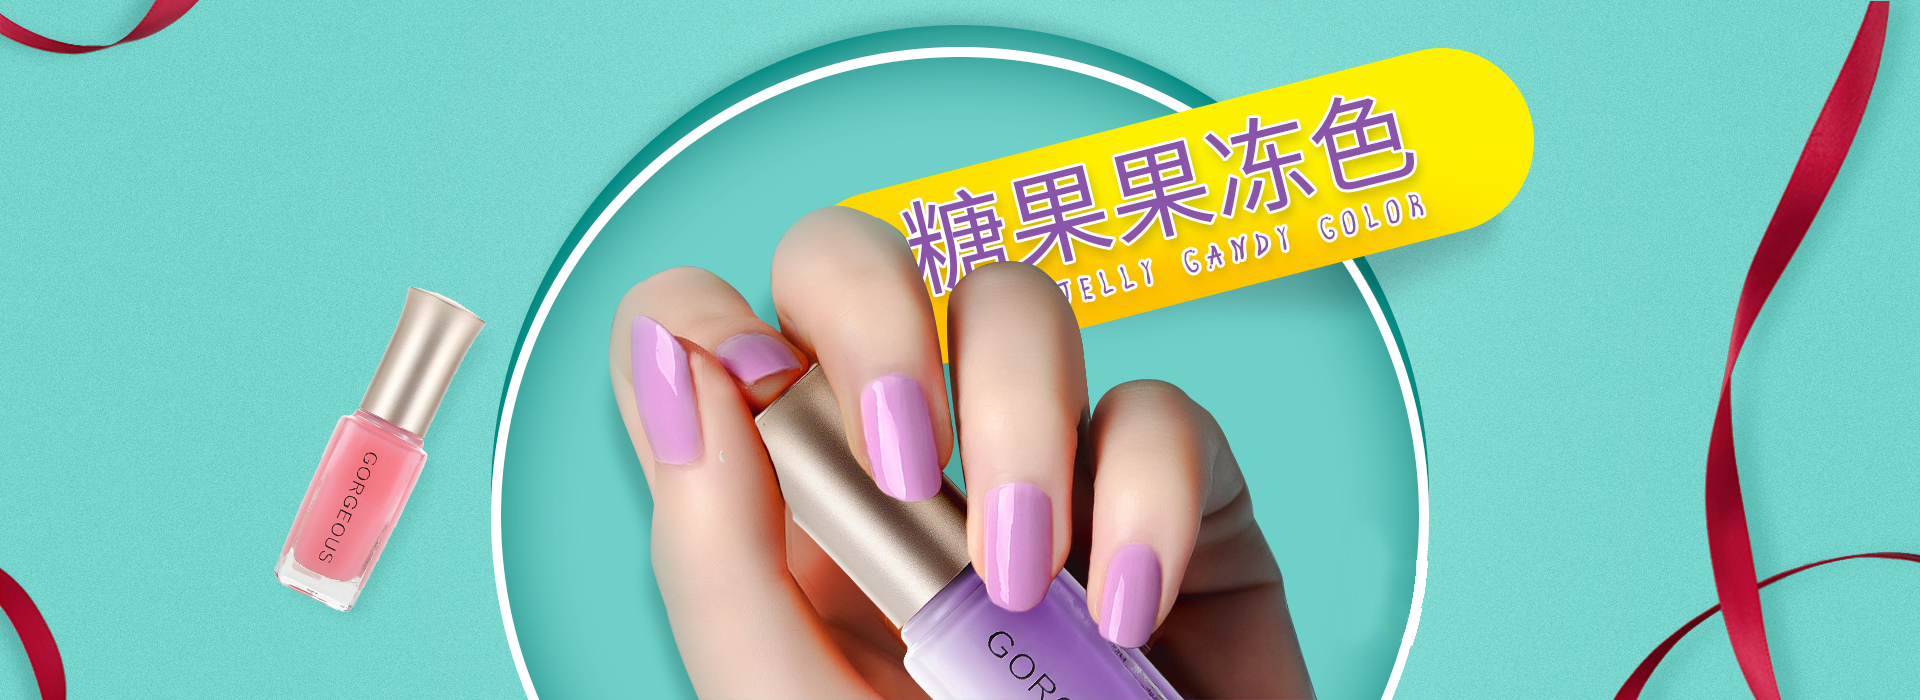 Bk Nail Art Store Small Orders Online Store Hot Selling And More